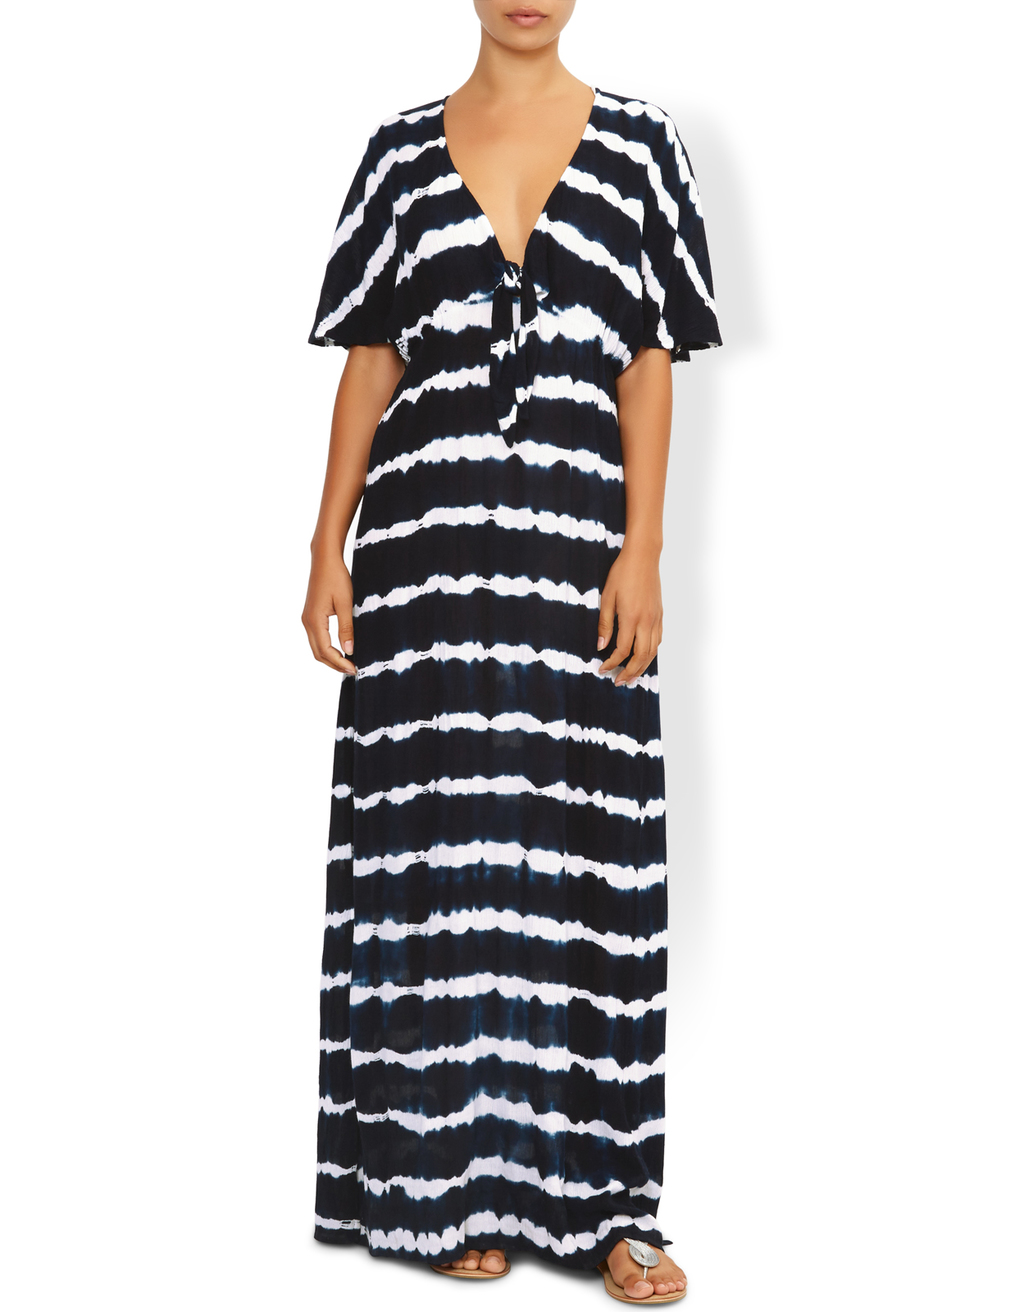 Lana Tie Dye Maxi Dress - neckline: low v-neck; fit: loose; pattern: horizontal stripes; style: maxi dress; secondary colour: white; predominant colour: black; occasions: casual; length: floor length; fibres: cotton - 100%; sleeve length: half sleeve; sleeve style: standard; texture group: cotton feel fabrics; pattern type: fabric; multicoloured: multicoloured; season: s/s 2016; wardrobe: basic